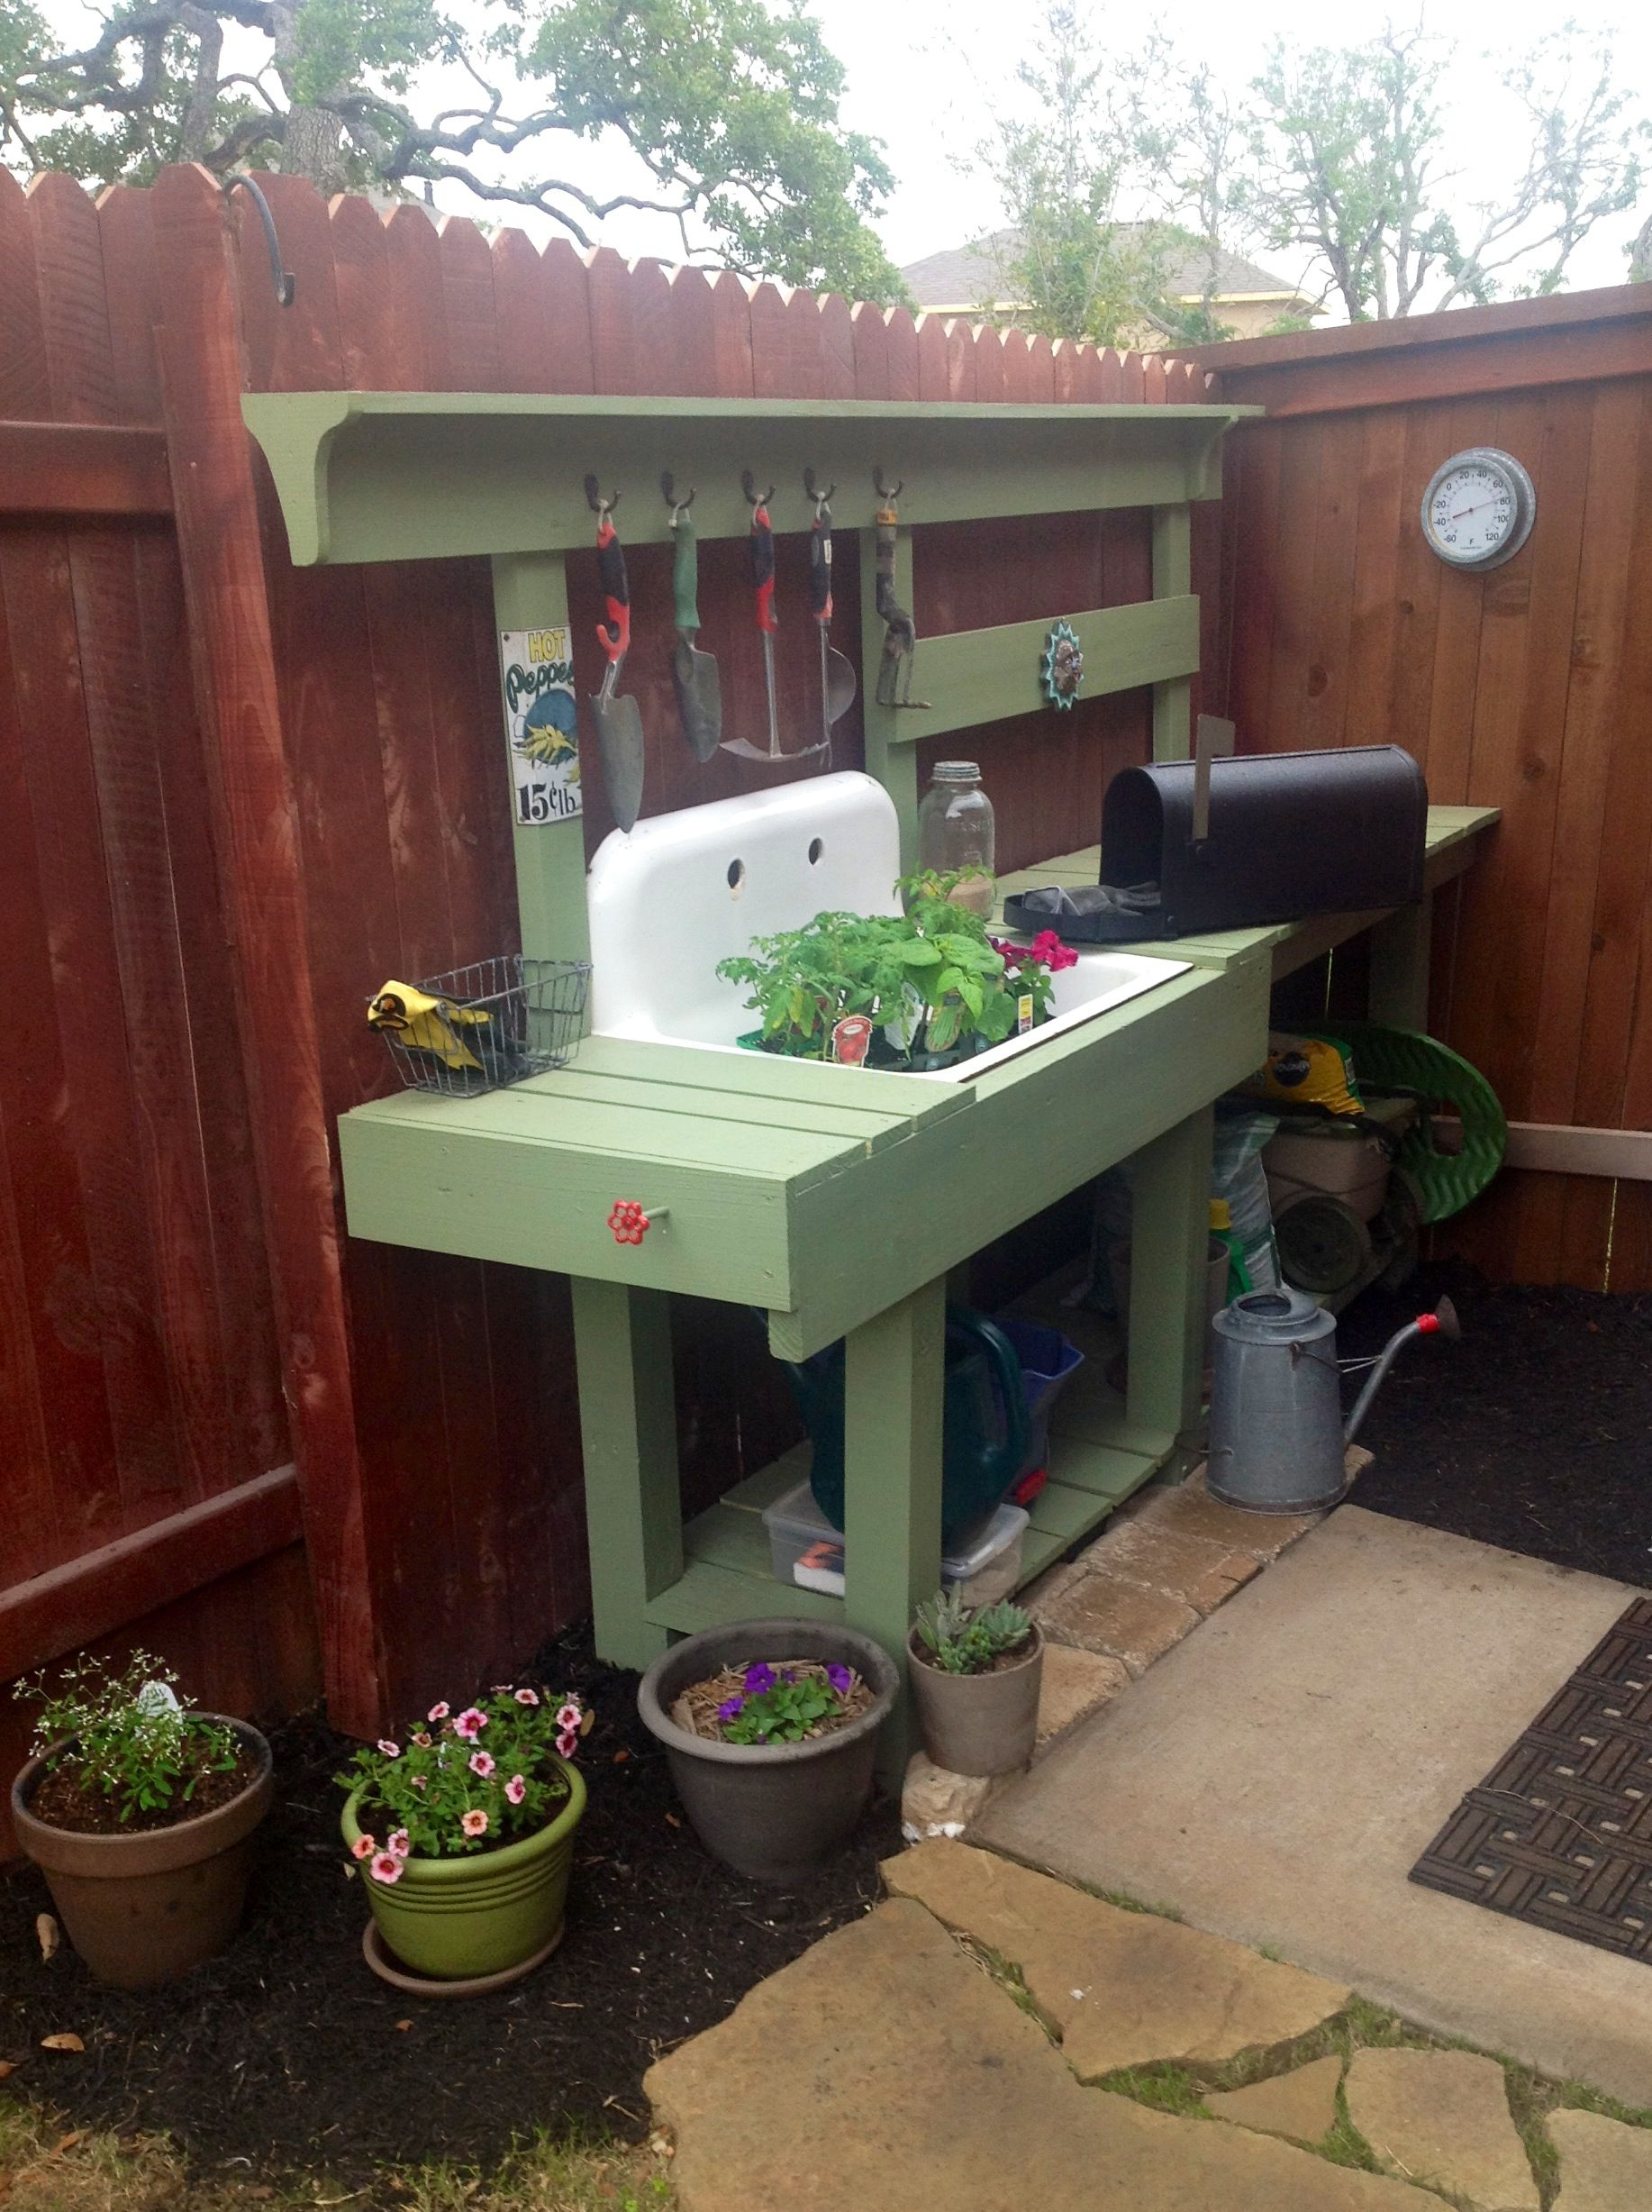 My new potting bench using an old sink & pressure treated lumber. Lots of room to store soil, fertilizers and tools while providing a sturdy workspace. Love....